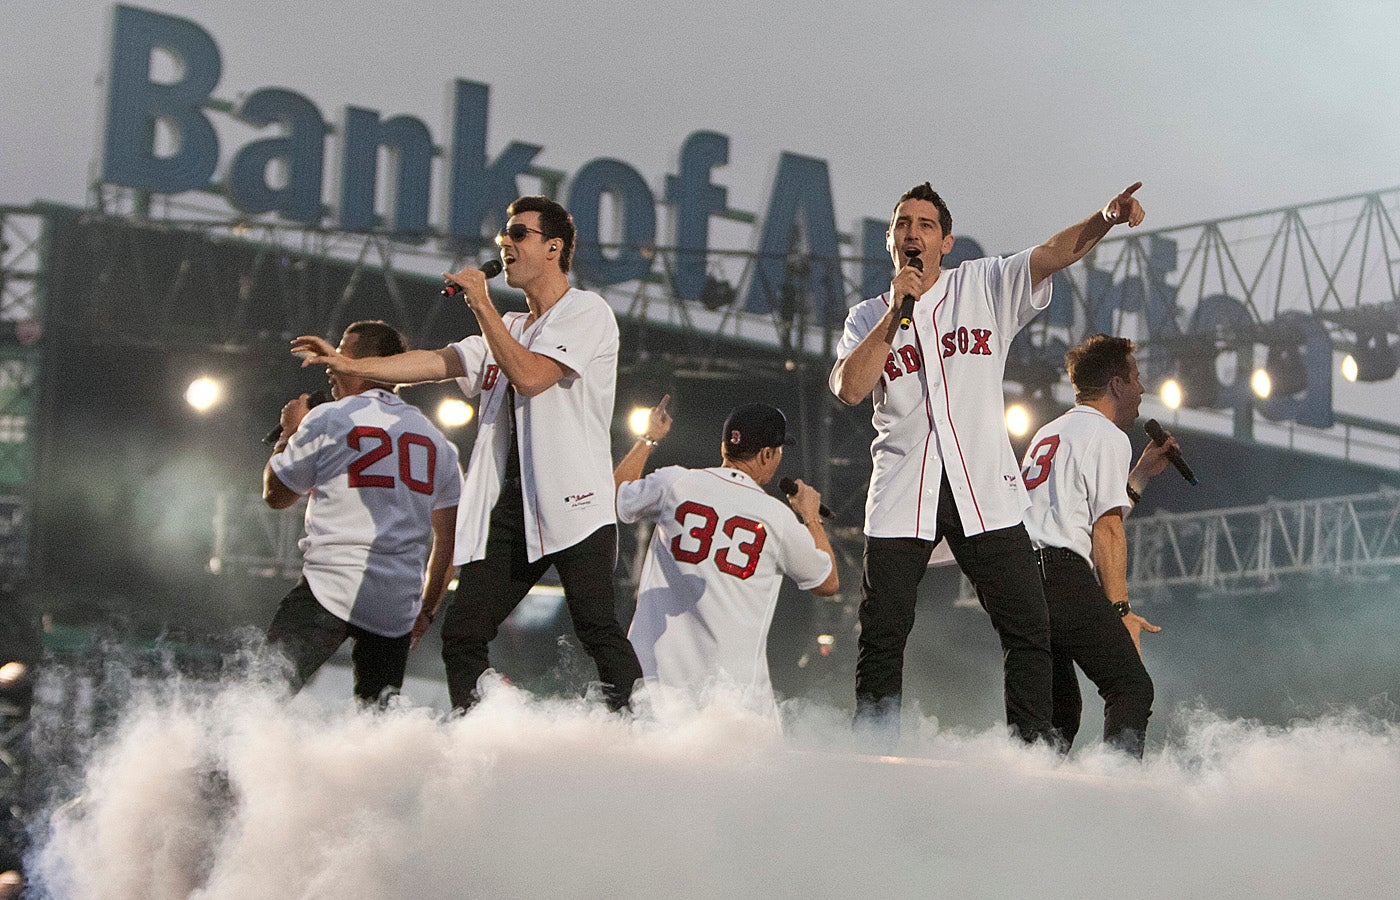 BOSTONGLOBE.COM FENWAY SLIDER Boston, MA 6/11/11 The New Kids on the Block performing with the Backstreet Boys (NKOTBSB) at Fenway Park on Saturday June 11, 2011. (Matthew J. Lee/Globe staff) slug: 12nkotbsb Section: living reporter: Christopher Muther -- 21ticketpop